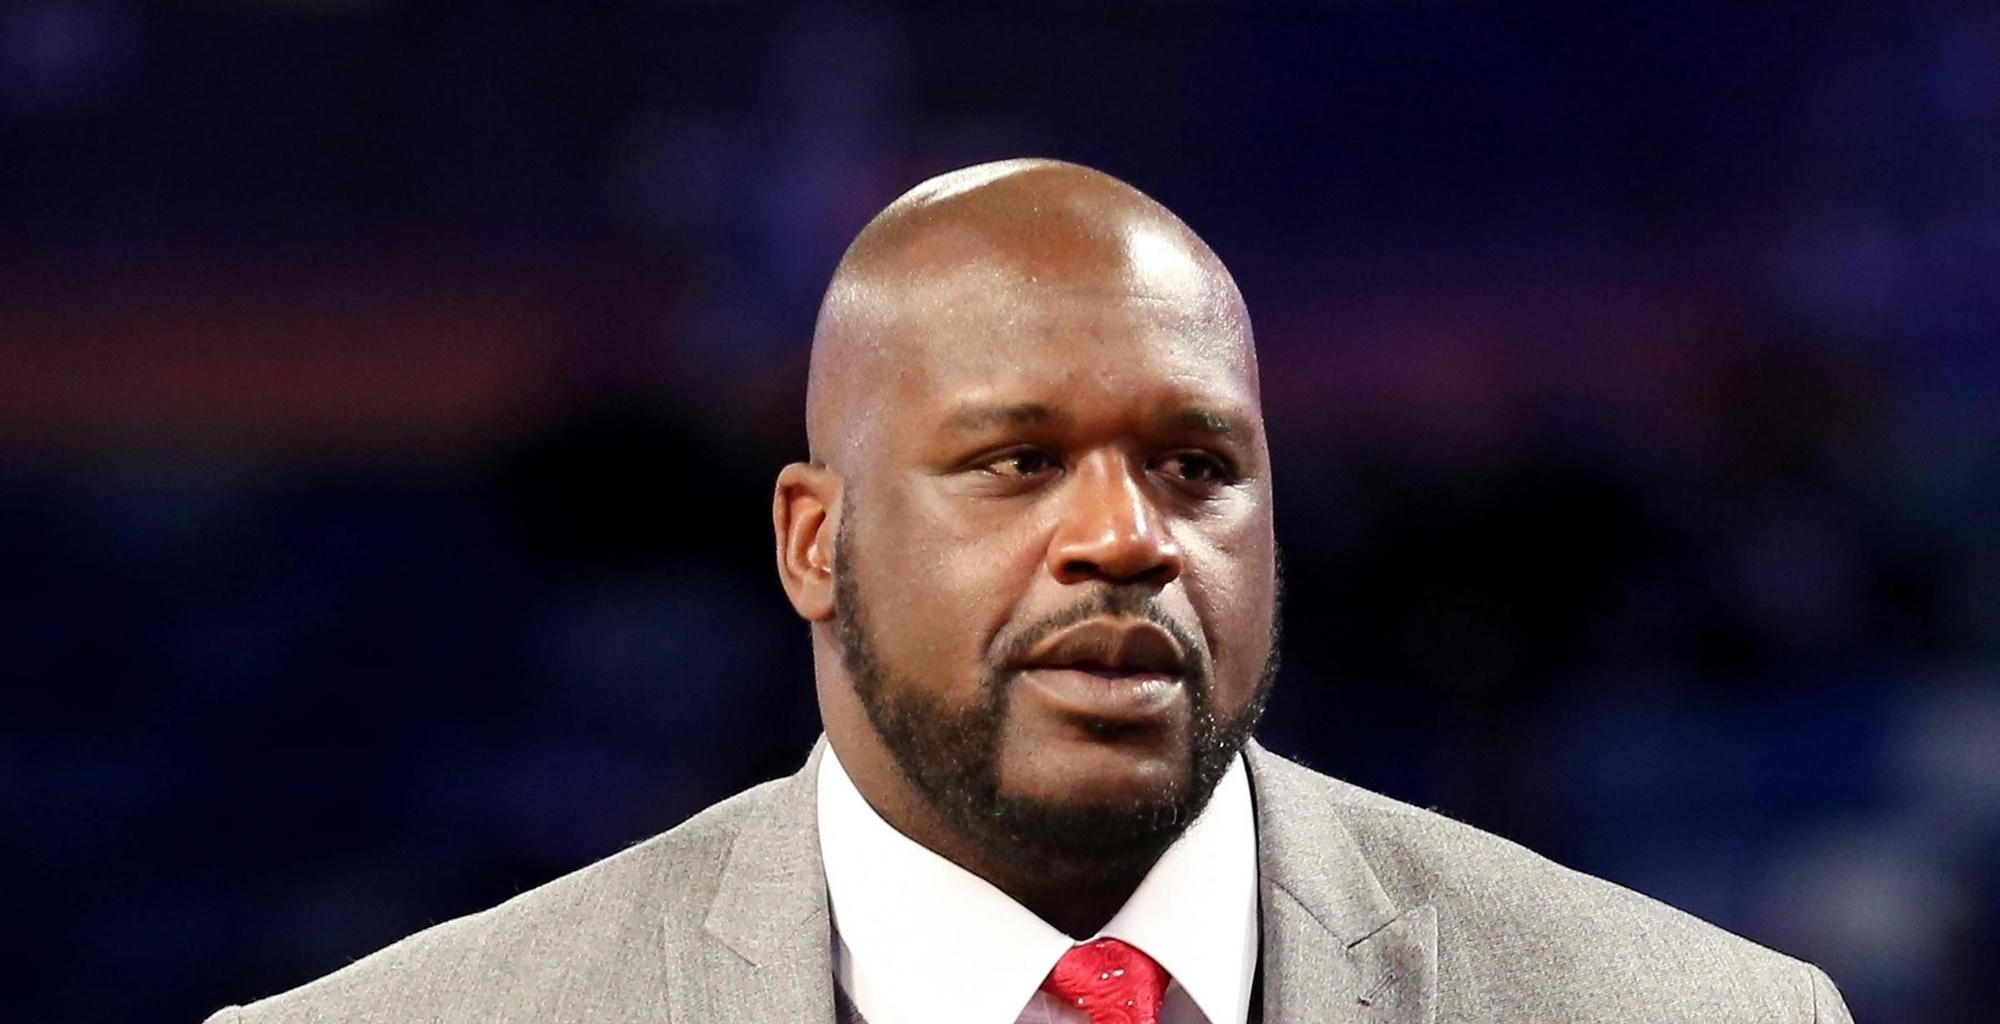 Shaquille O'Neal Shows Off Epic Dance Moves In Viral Video -- Will Shaunie Enjoy This?